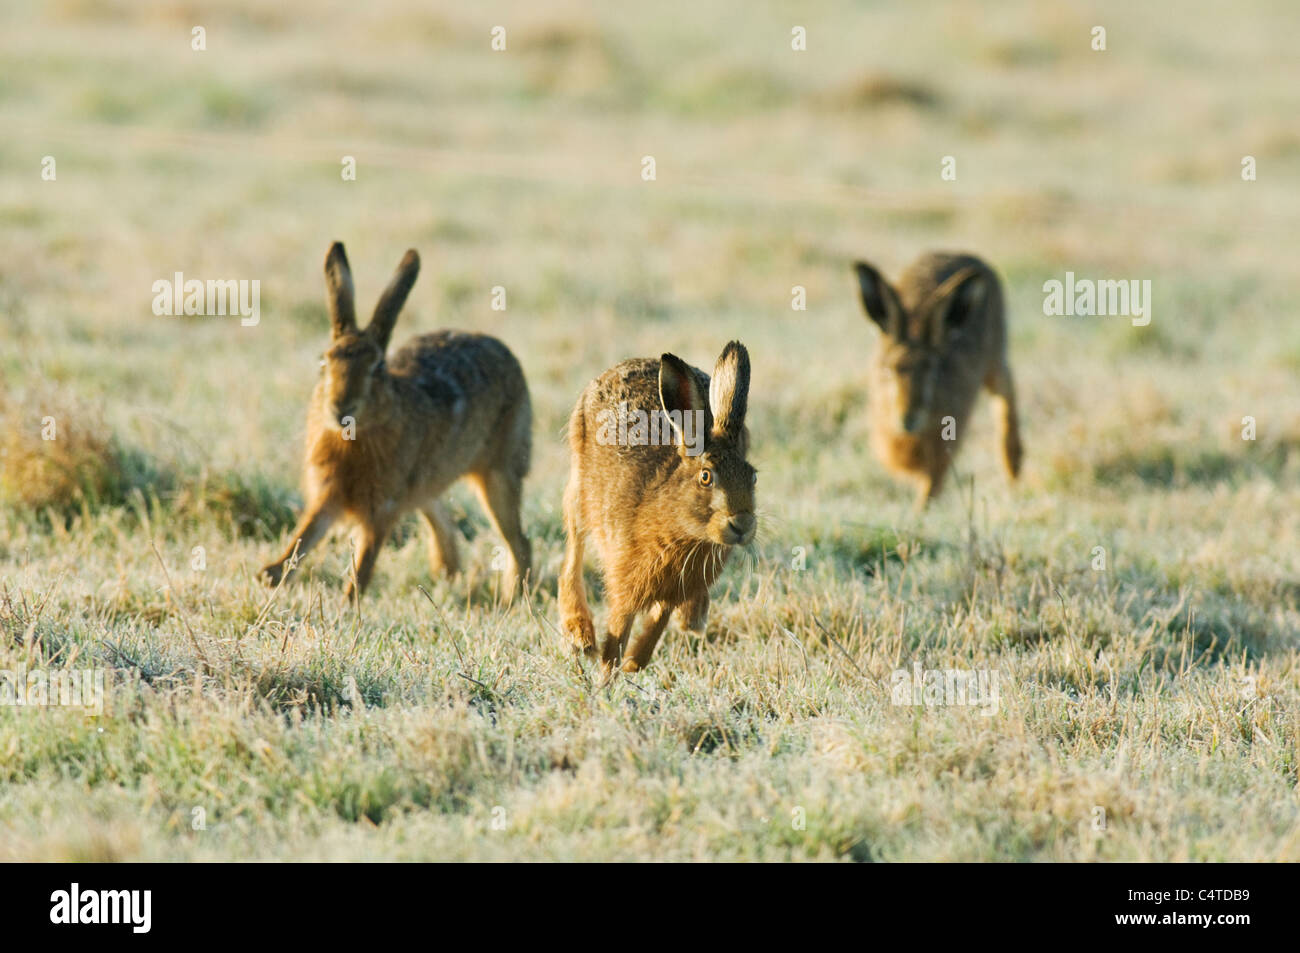 European Hare, Lepus europaeus, chasing, frost covered grass, Kent, England, February. - Stock Image